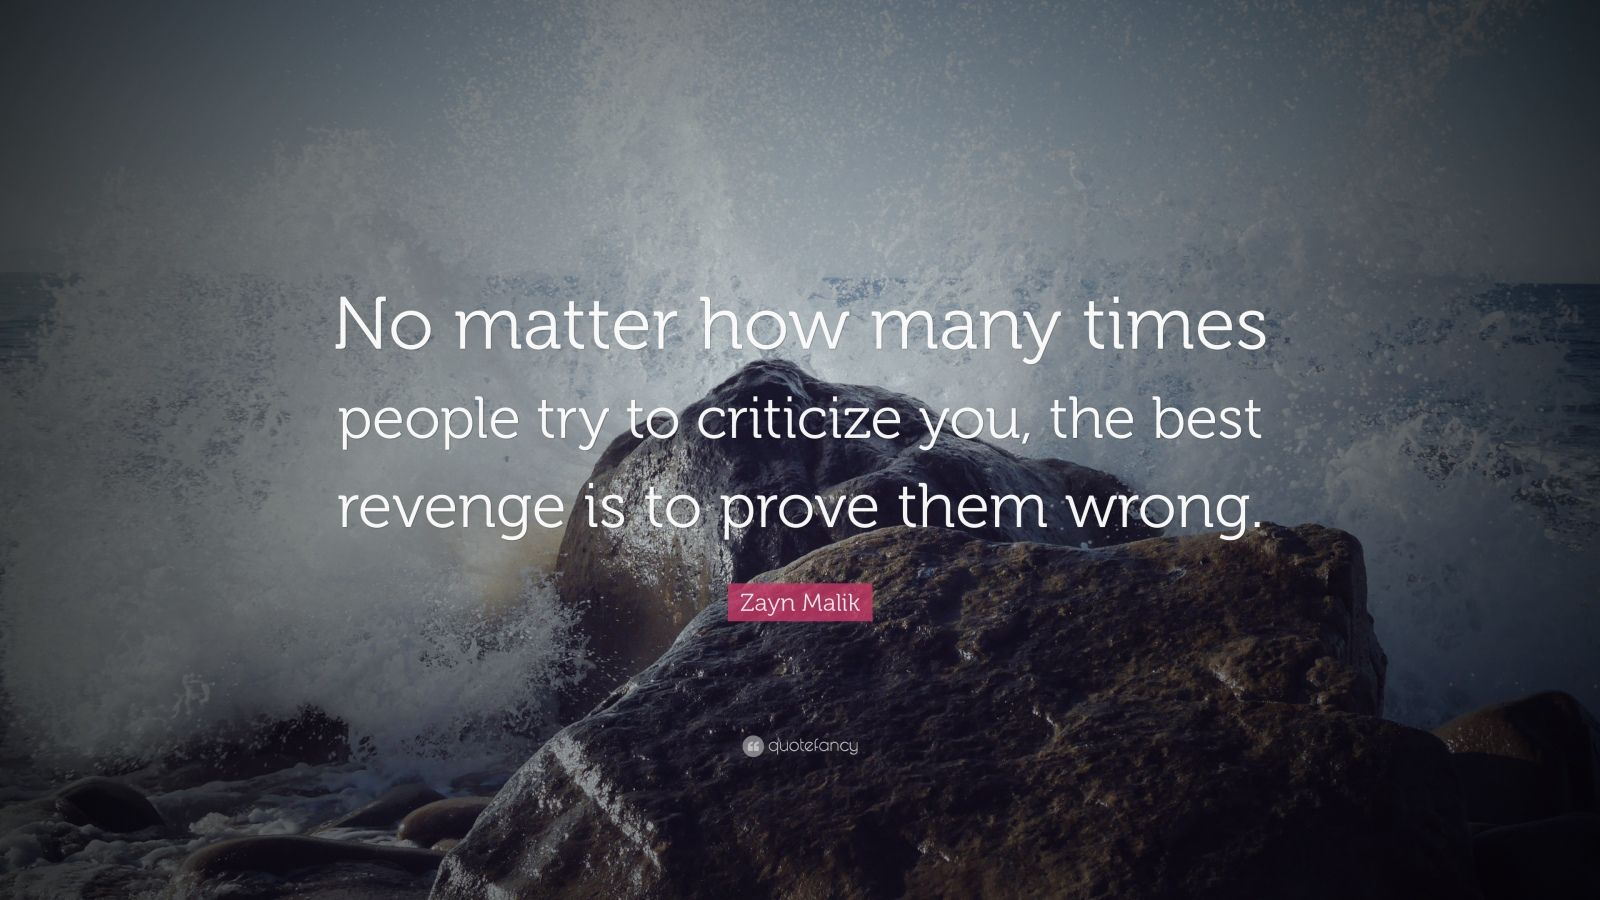 """Zayn Malik Quote: """"No matter how many times people try to criticize you, the best revenge is to prove them wrong."""""""